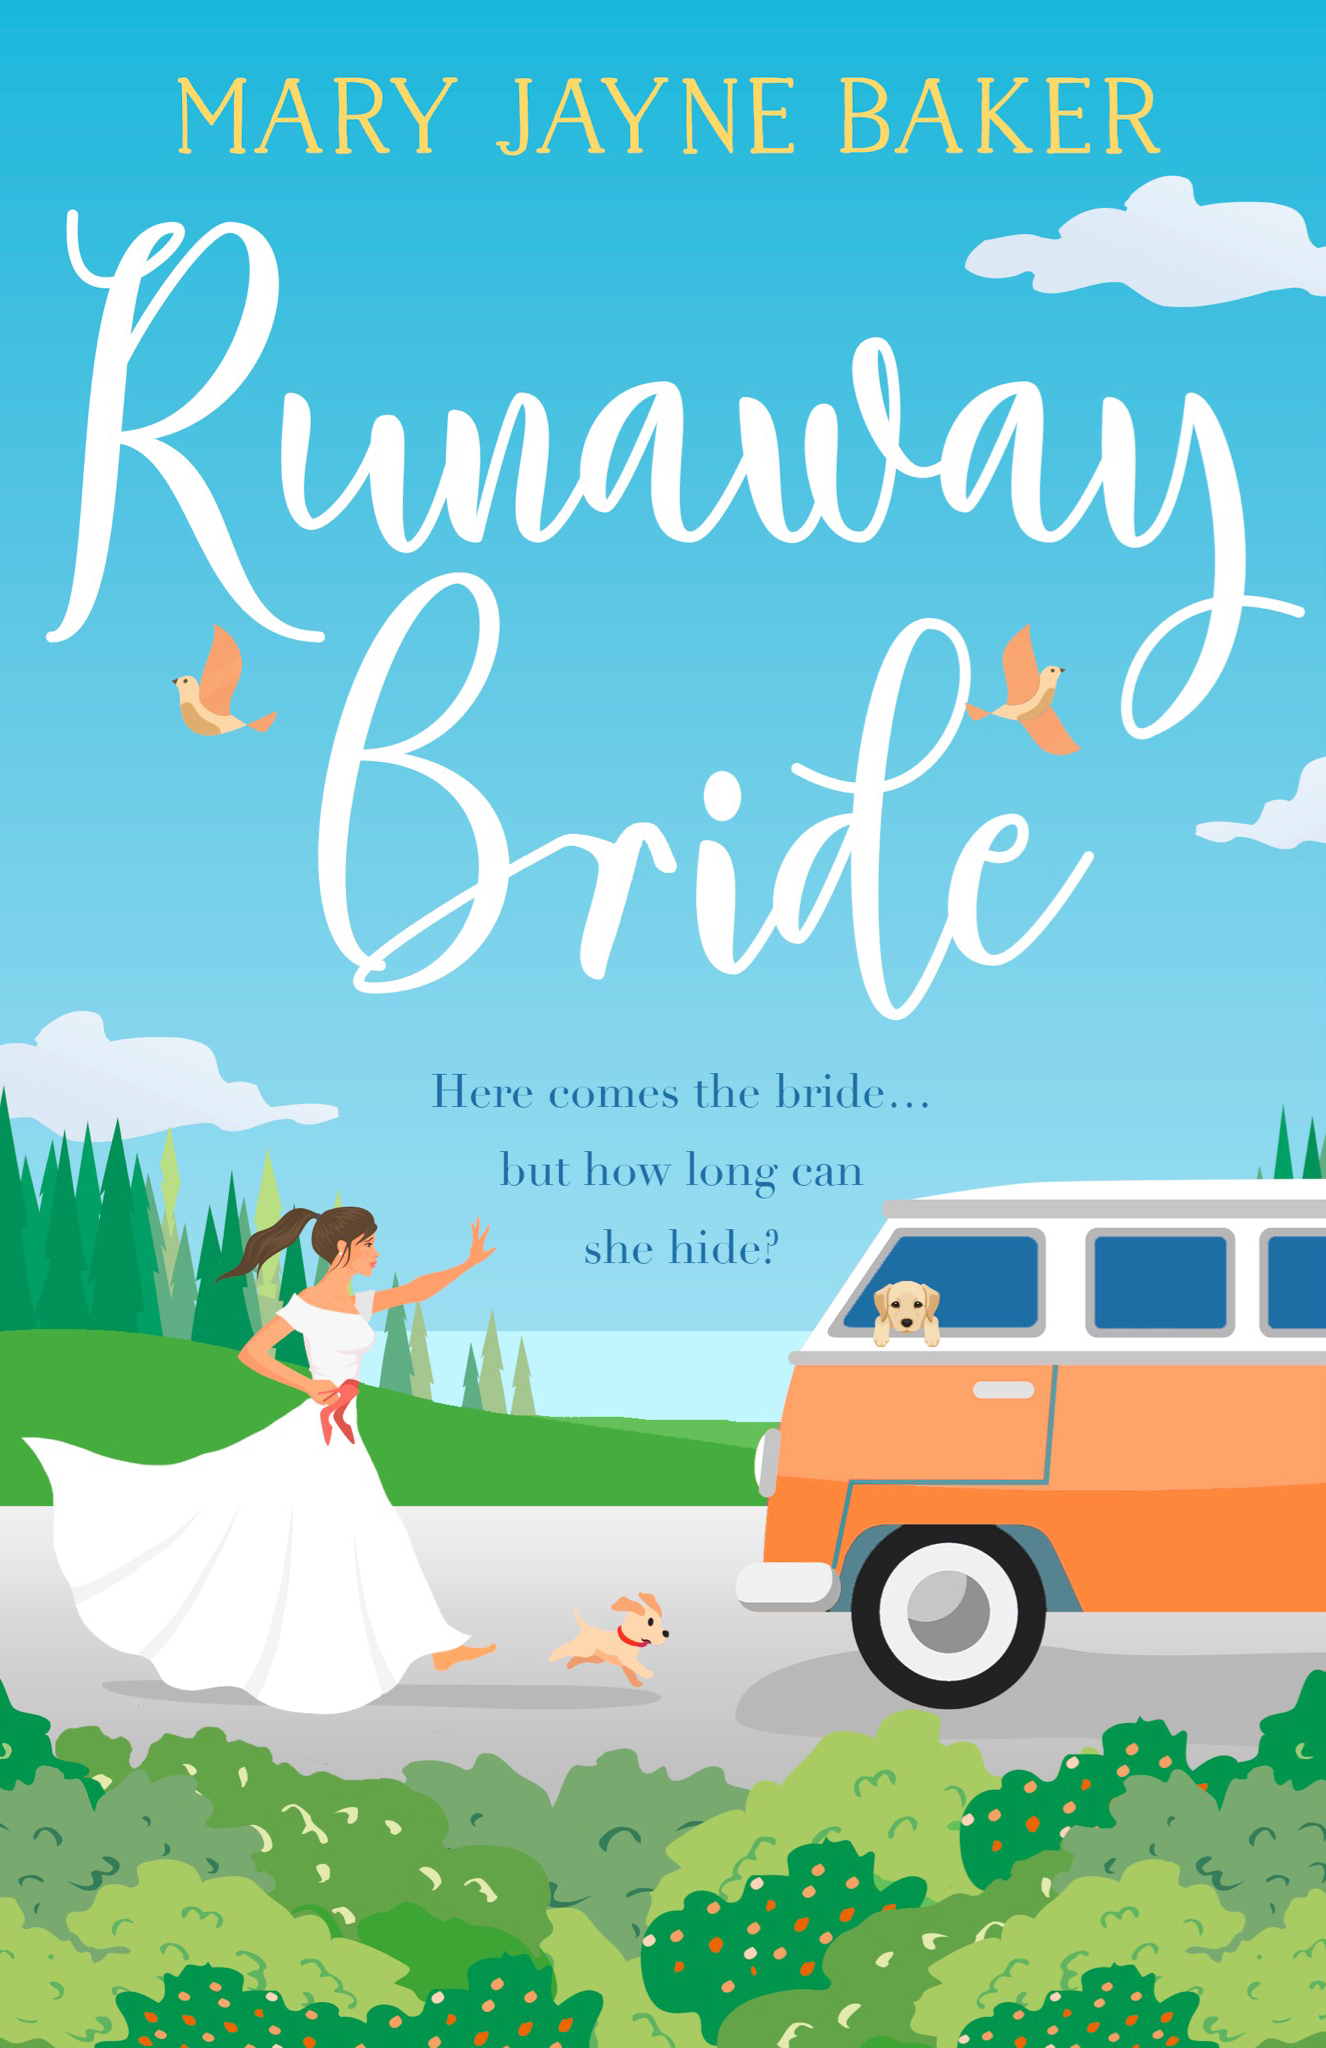 Runaway bride mary jayne baker author runaway bride will be published as an ebook by harperimpulse on 16 february 2018 pre order now fandeluxe Gallery